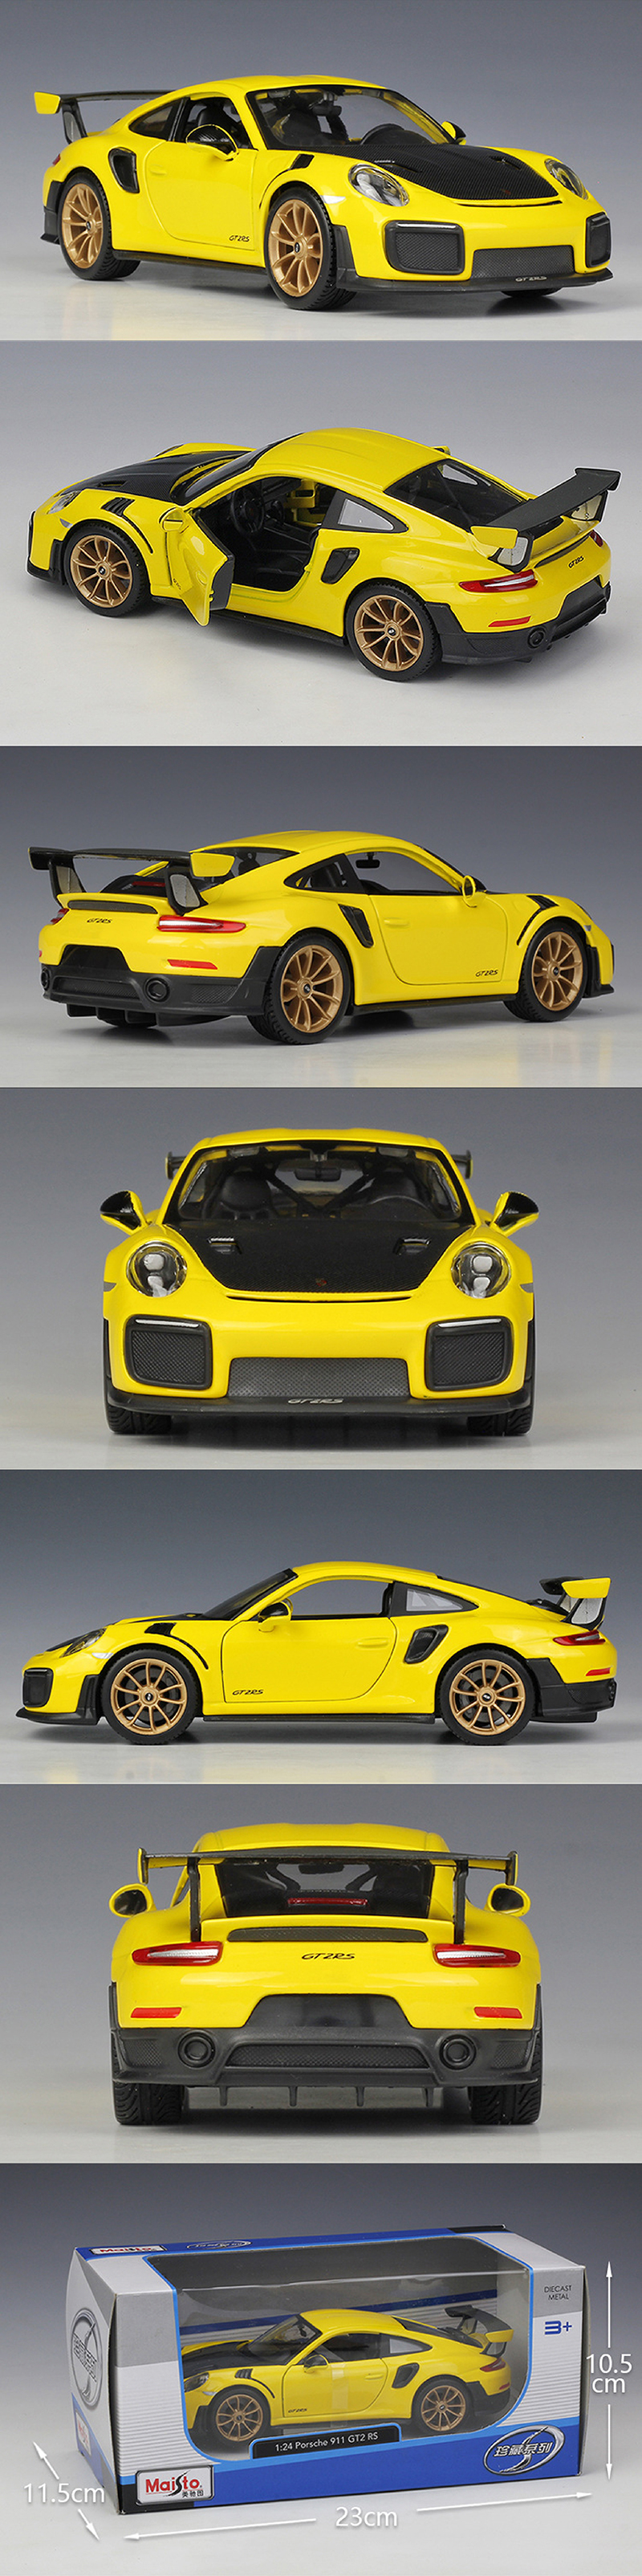 GT2 RS Yellow Diecast Model Car 6